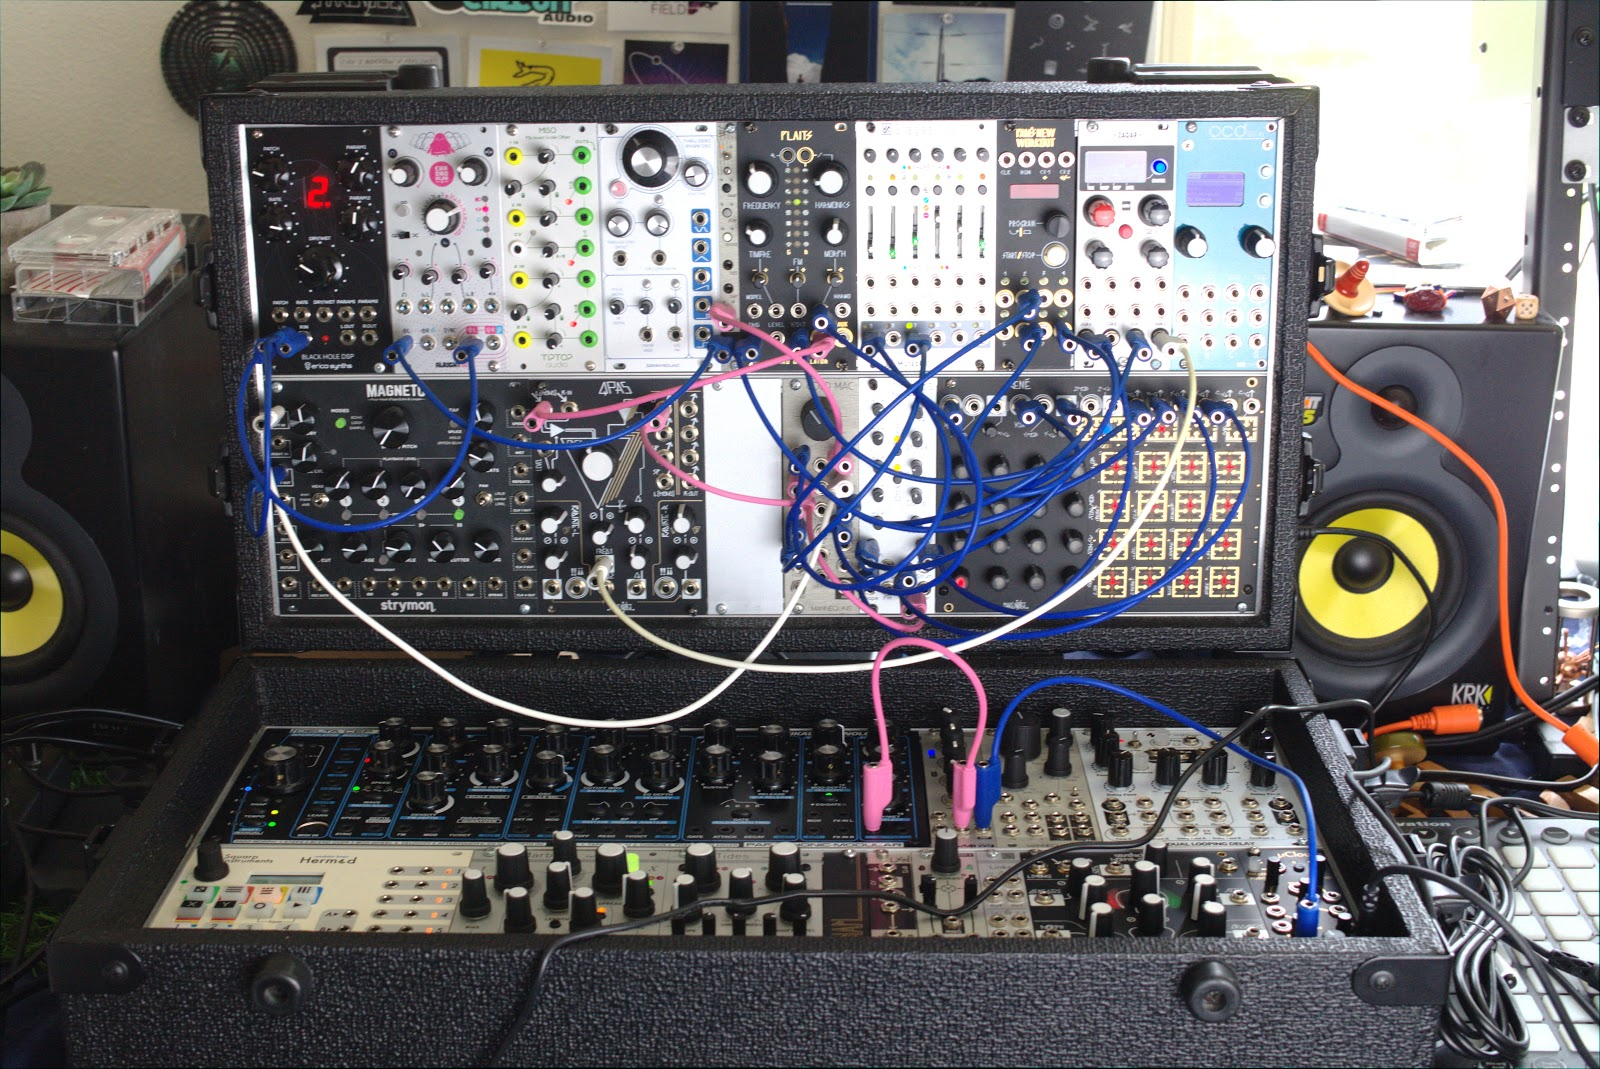 Top 10 Things to Know Before Launching into Eurorack | VI-CONTROL